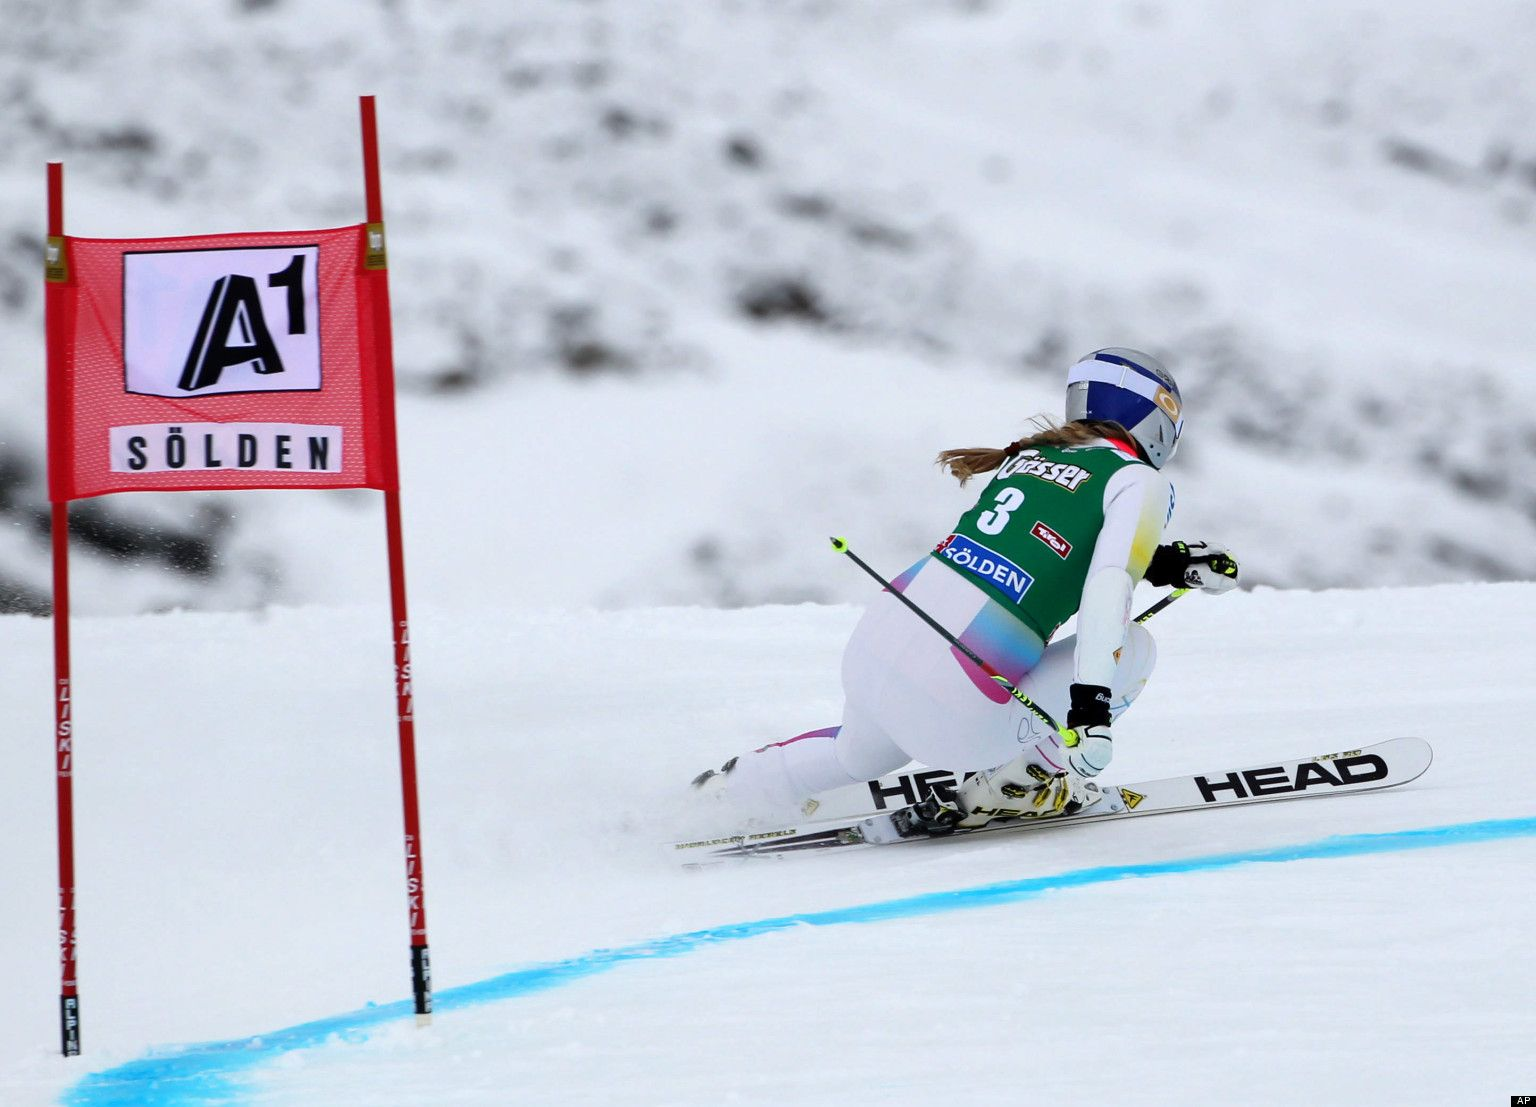 I love alpine skiing! I am on the alpine ski team at Wausau East and it is one of my biggest passions!